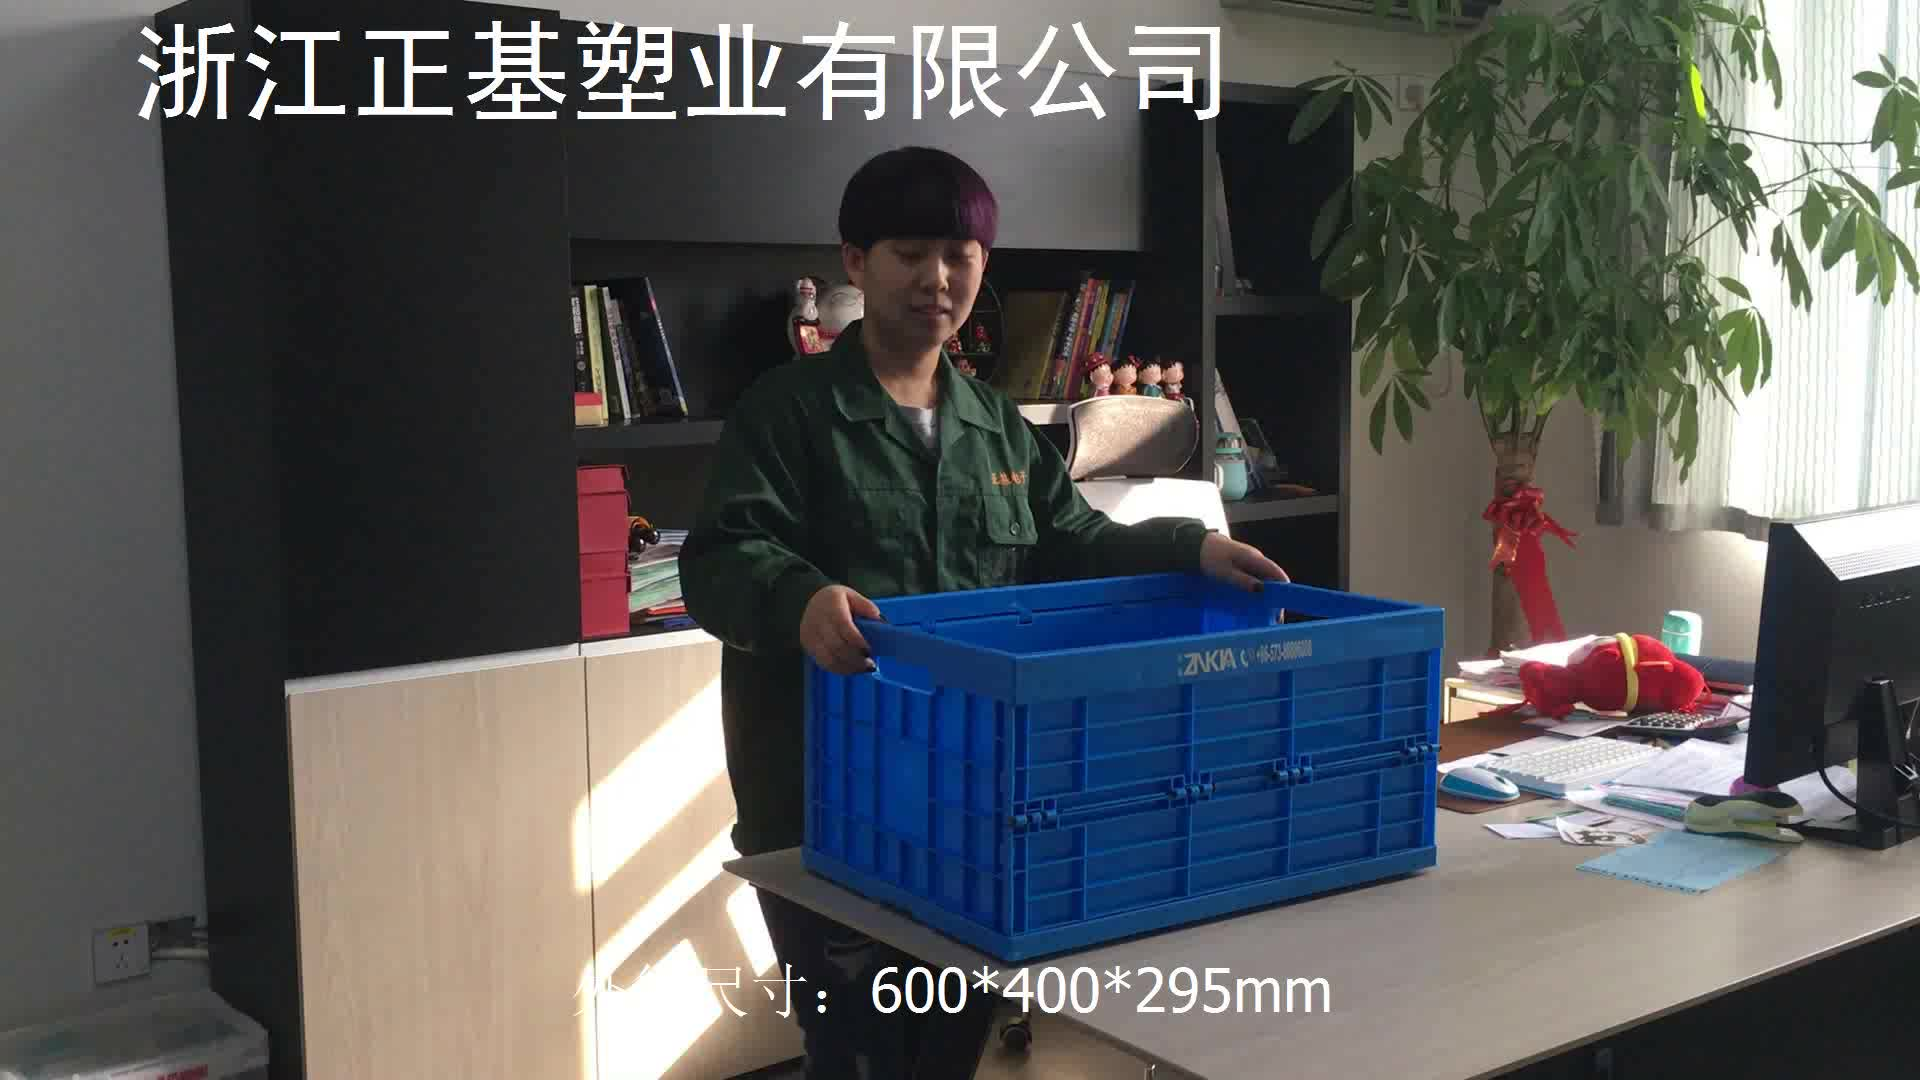 heavy duty storage collapsible plastic warehouse storage laundry bin box bins crate for pet